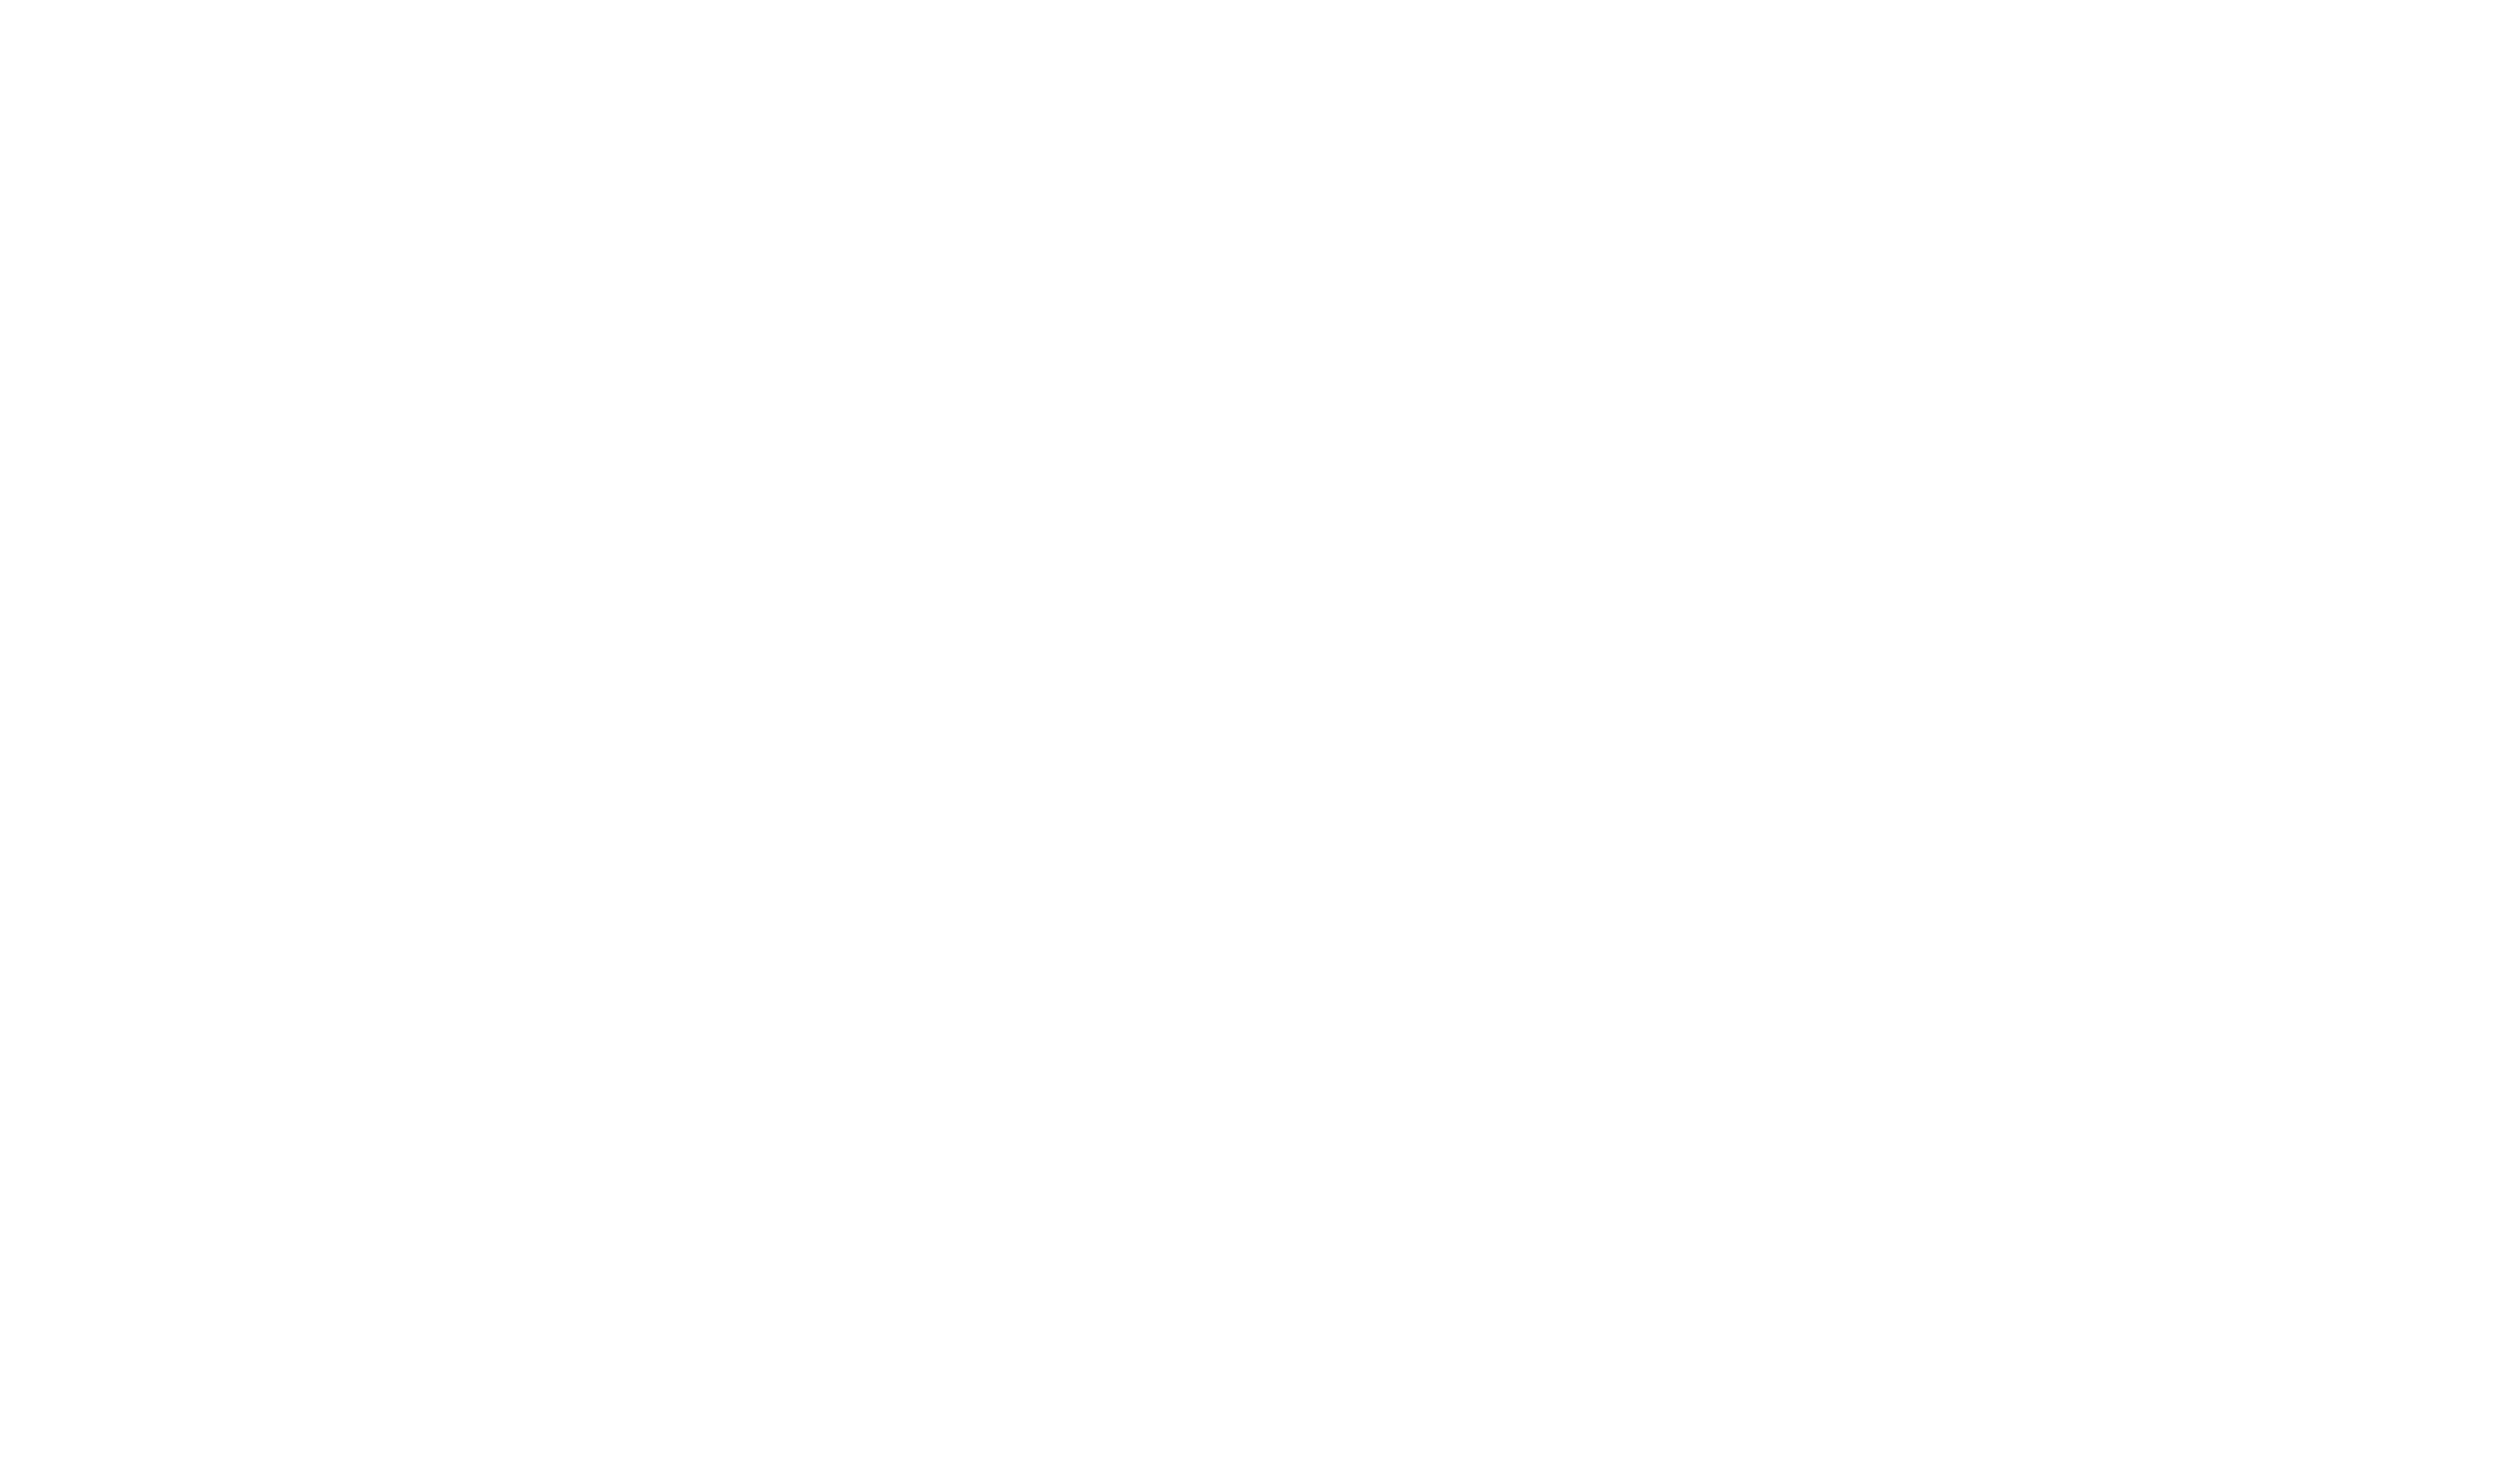 Green_Product_Award_2nd_place_2014